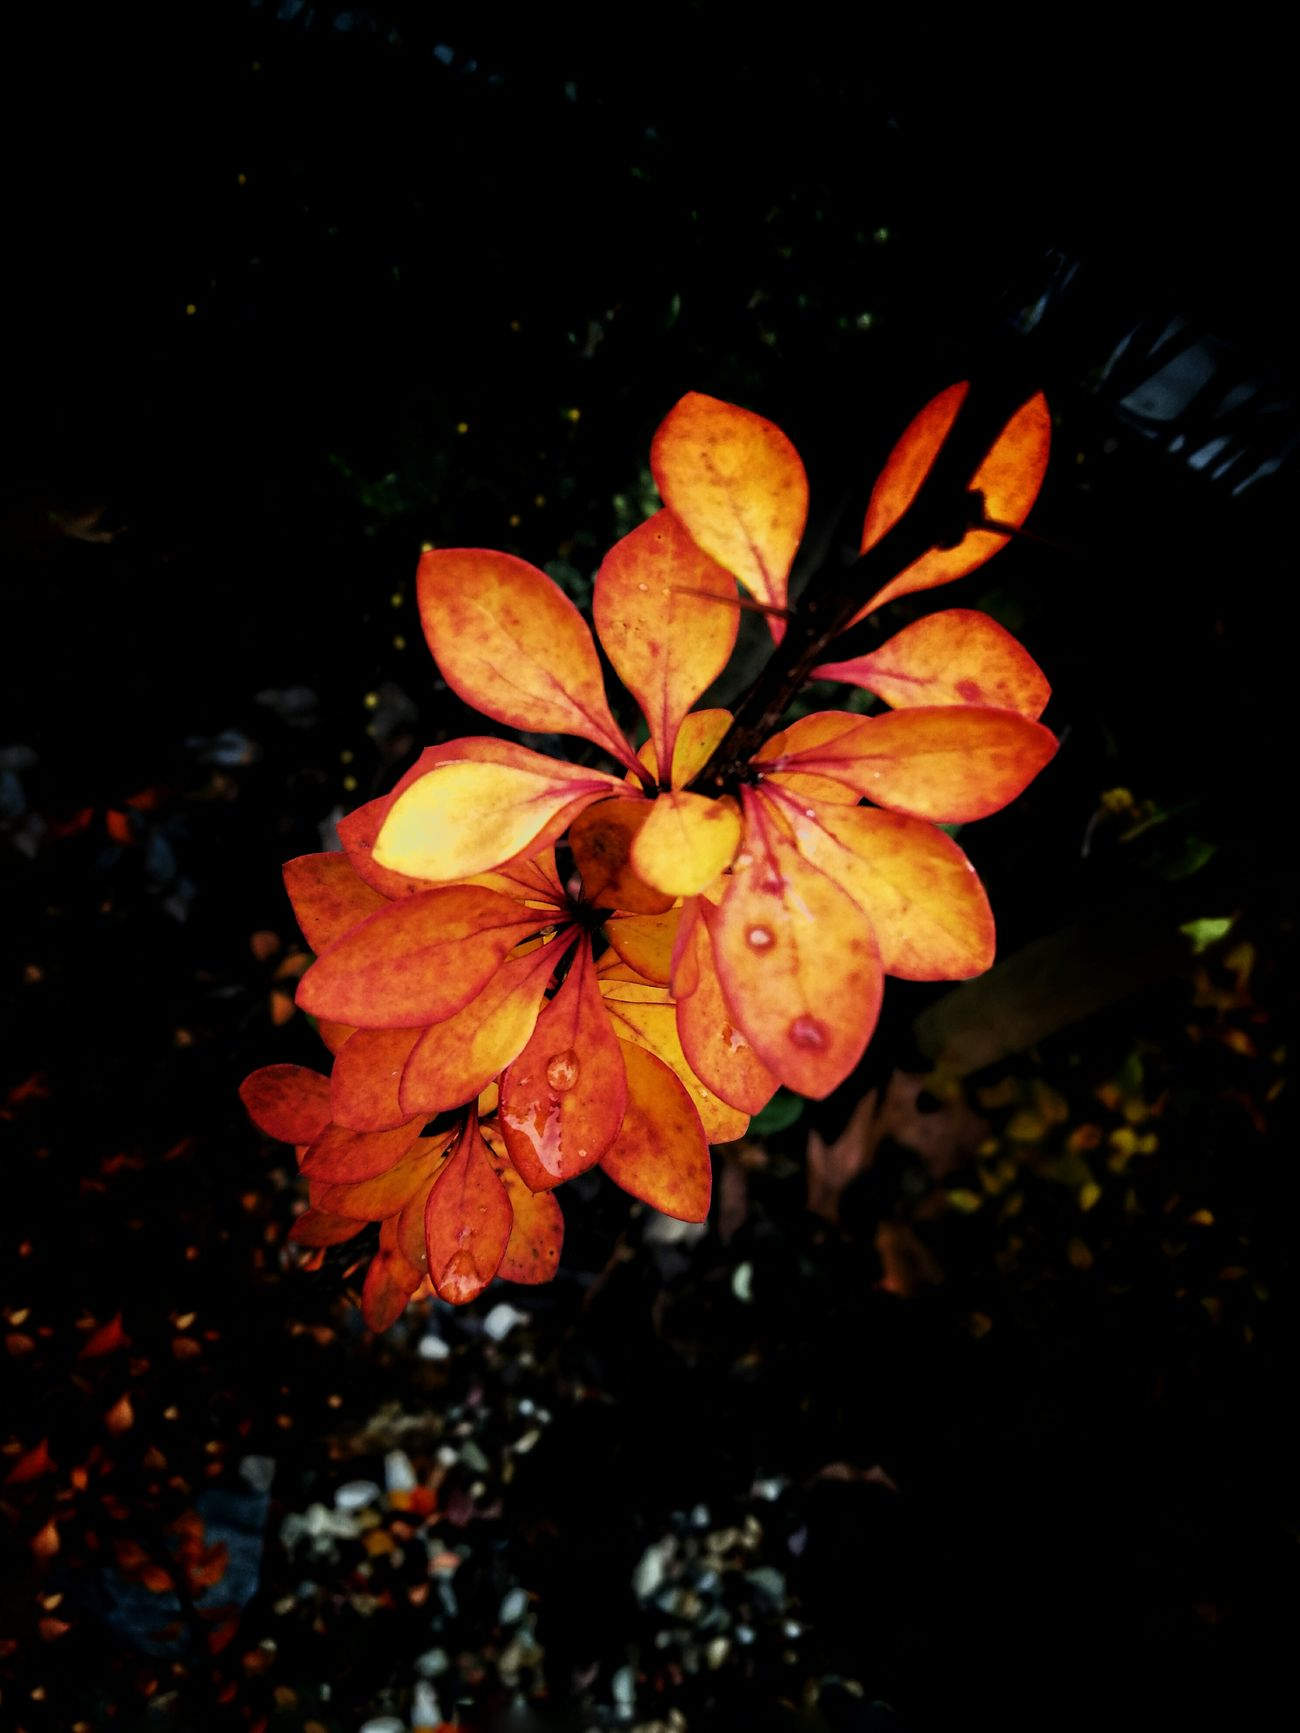 Flower Nature Beauty In Nature Orange Color Leaf Close-up Growth No People Autumn Freshness Outdoors Black Background Flower Head Fragility Day